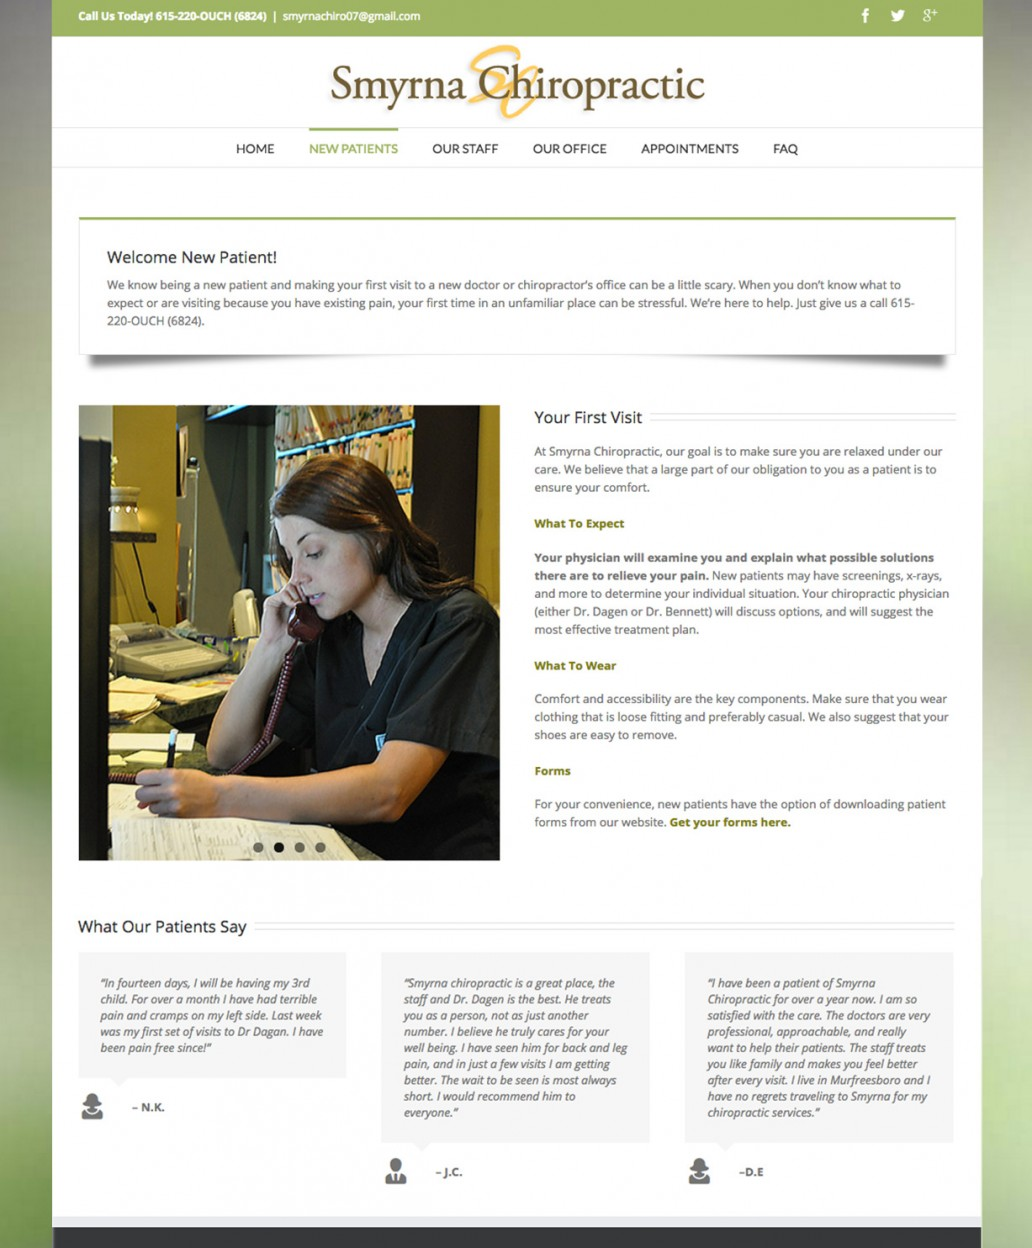 chiropractic web site, graphic design